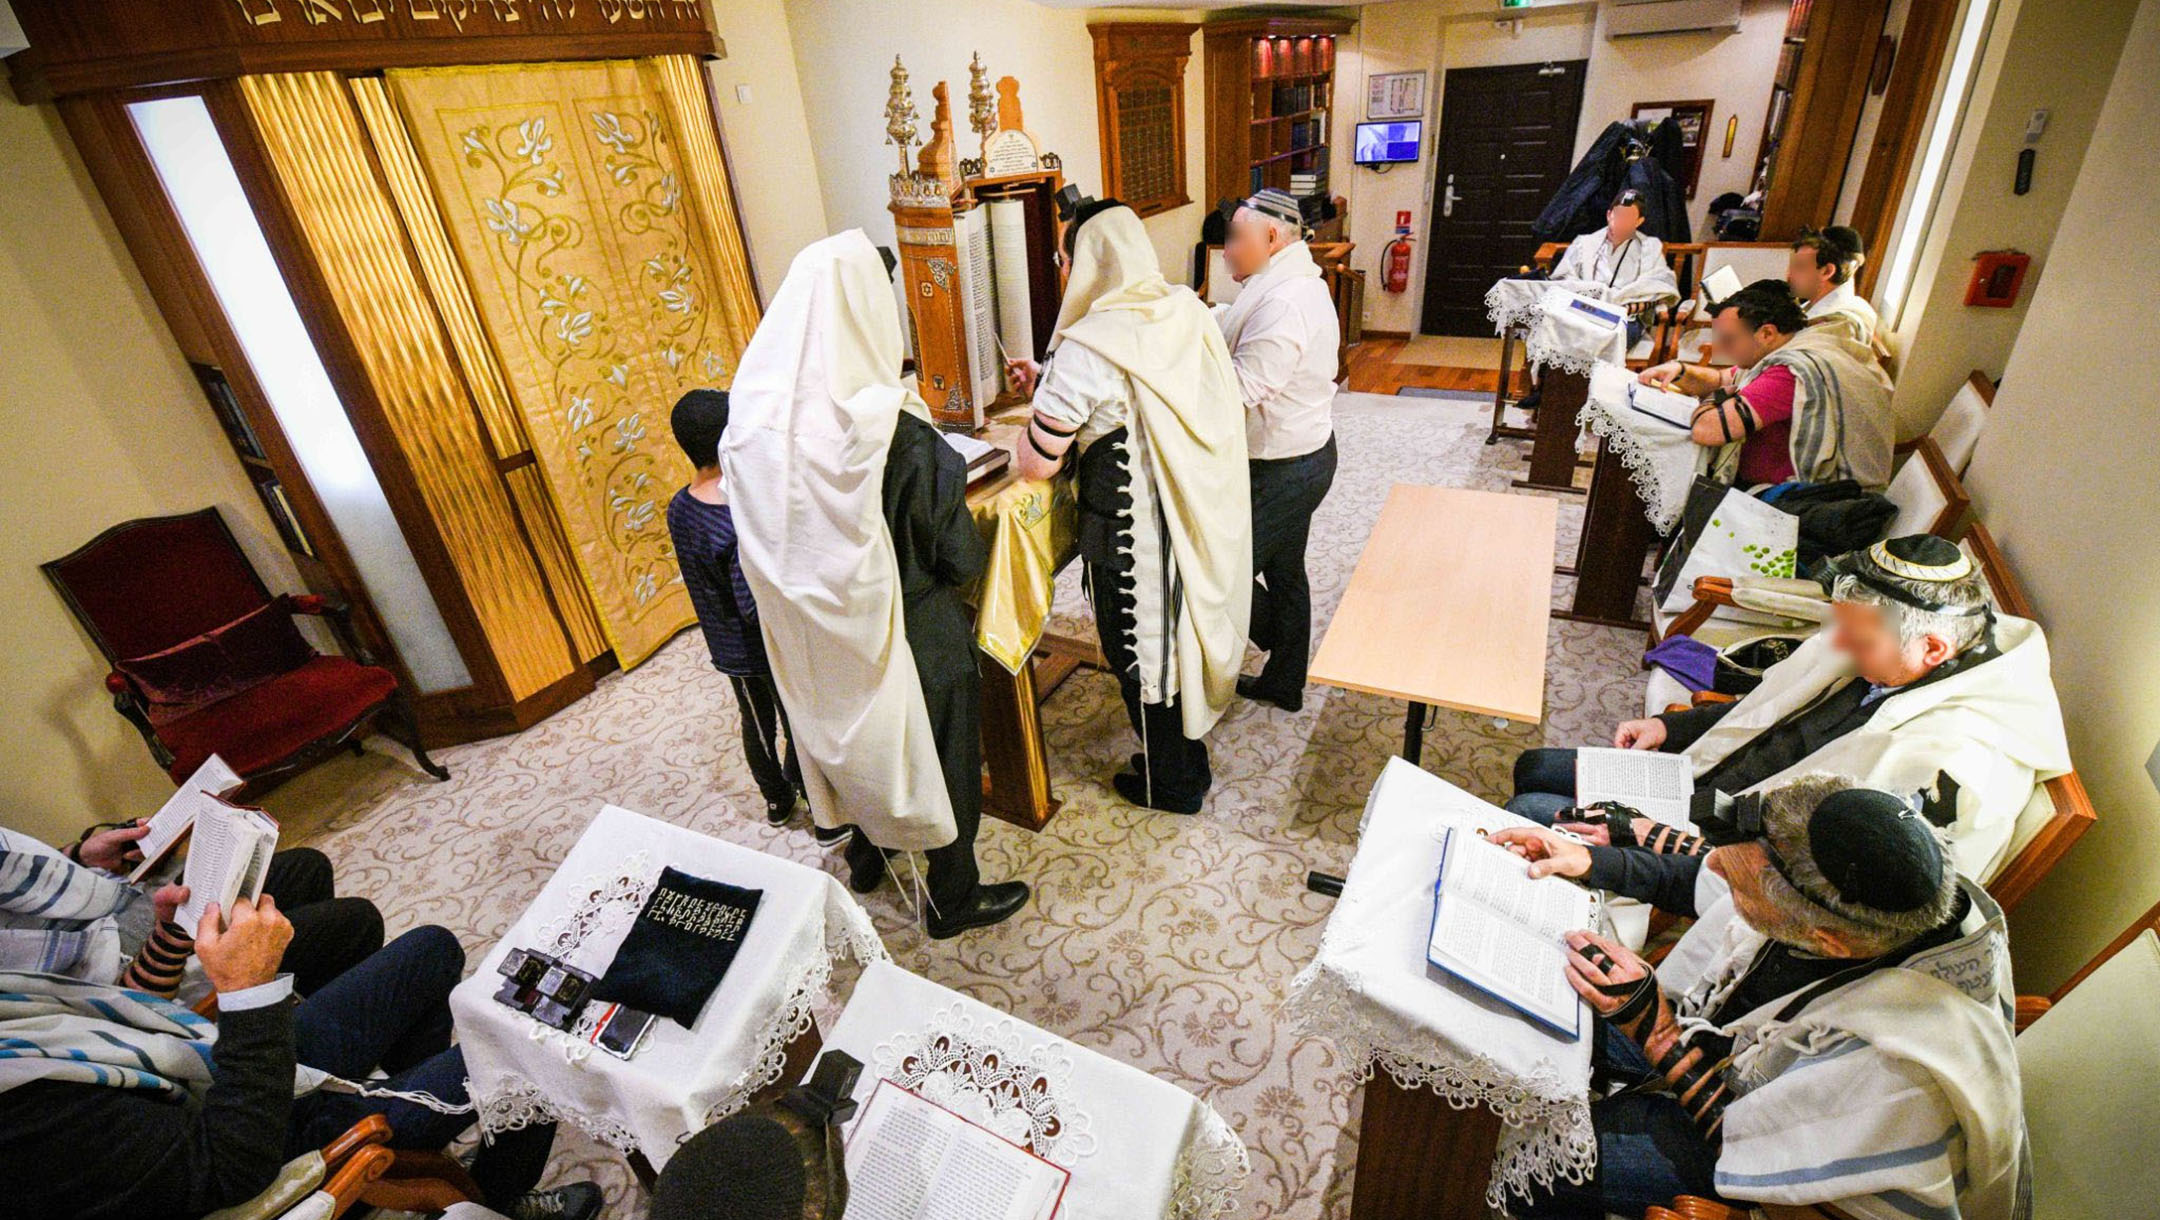 Jews pray at the Jewish Cultural Center of Monaco in 2018. (Courtesy of Rabbi Tanhoum Matusof)